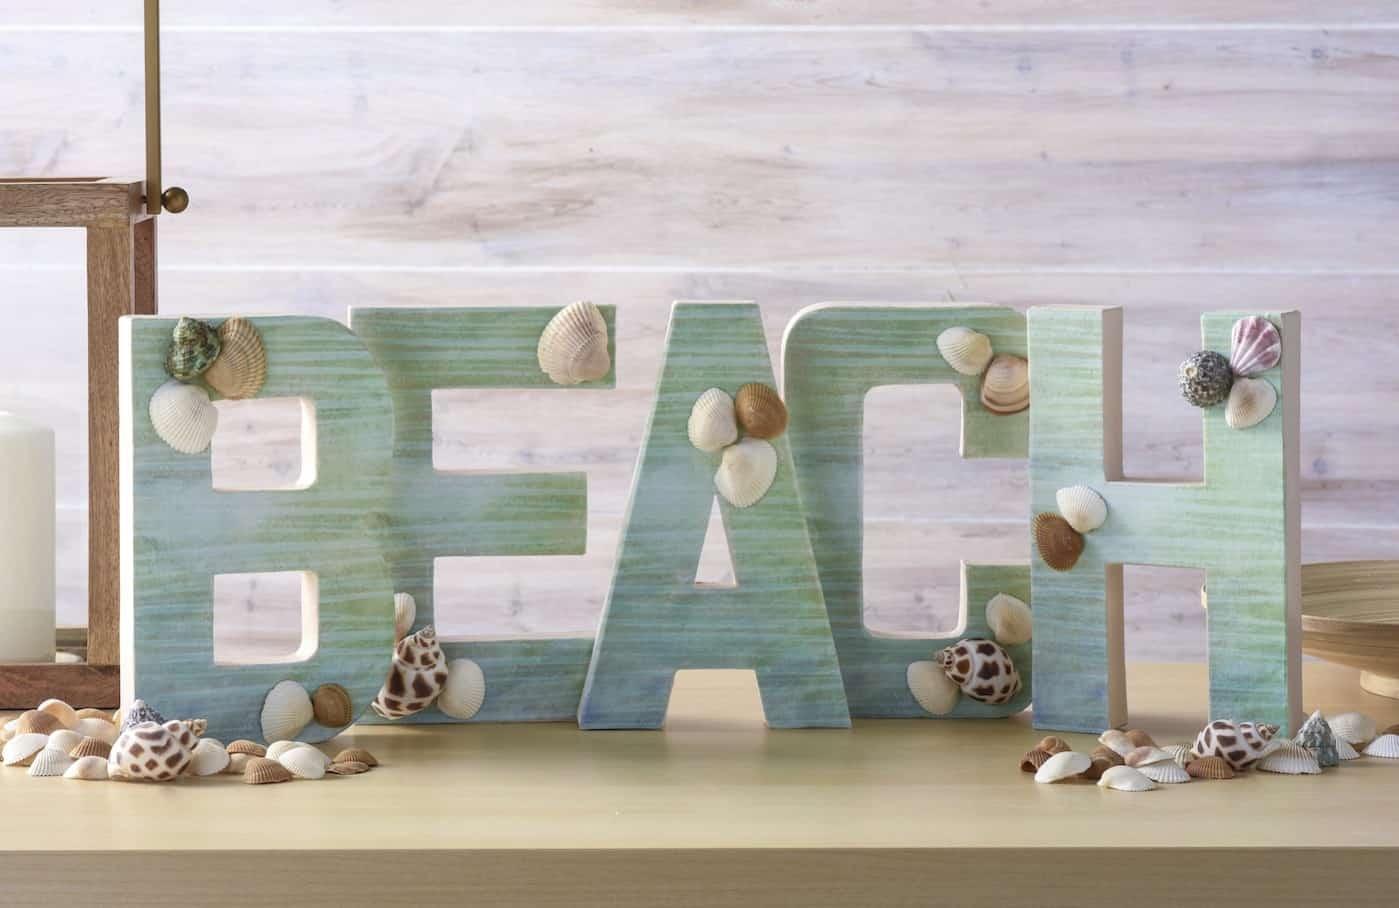 Make a fun project for summer! This DIY letter beach craft would look perfect on your mantel - and it's very easy to assemble with Mod Podge.